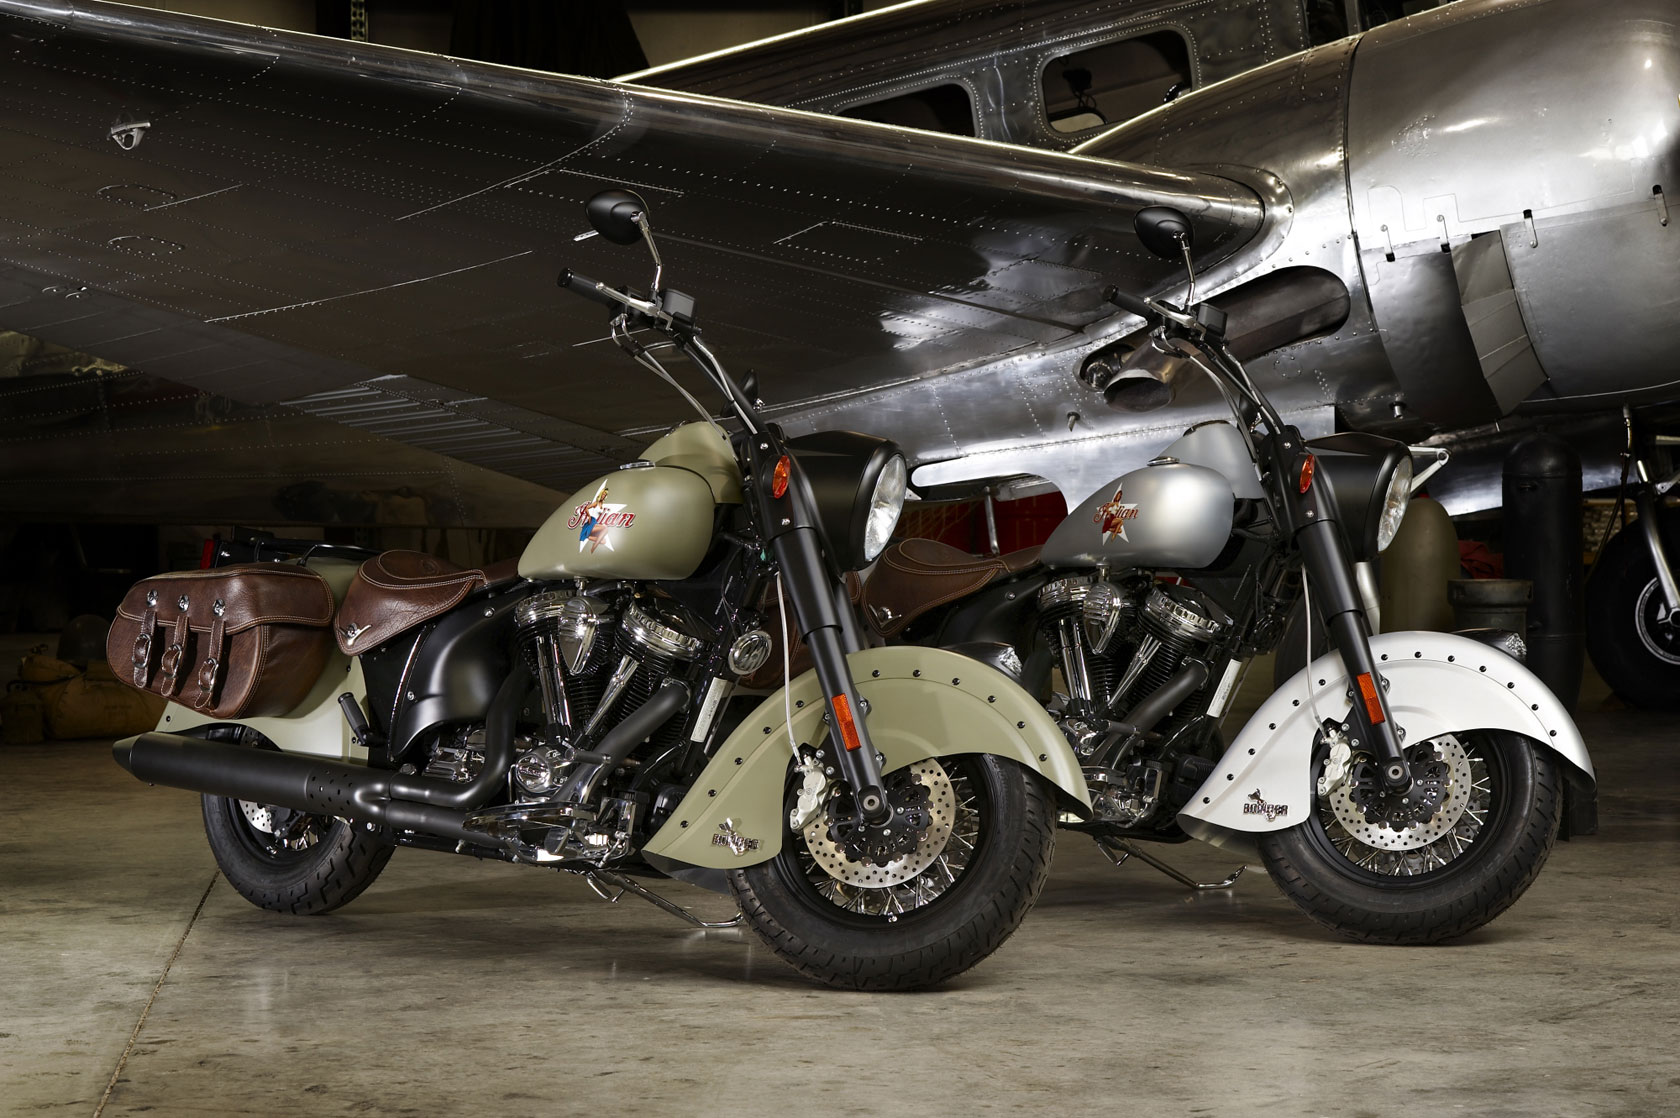 Indian Chief Standard 2011 images #97778